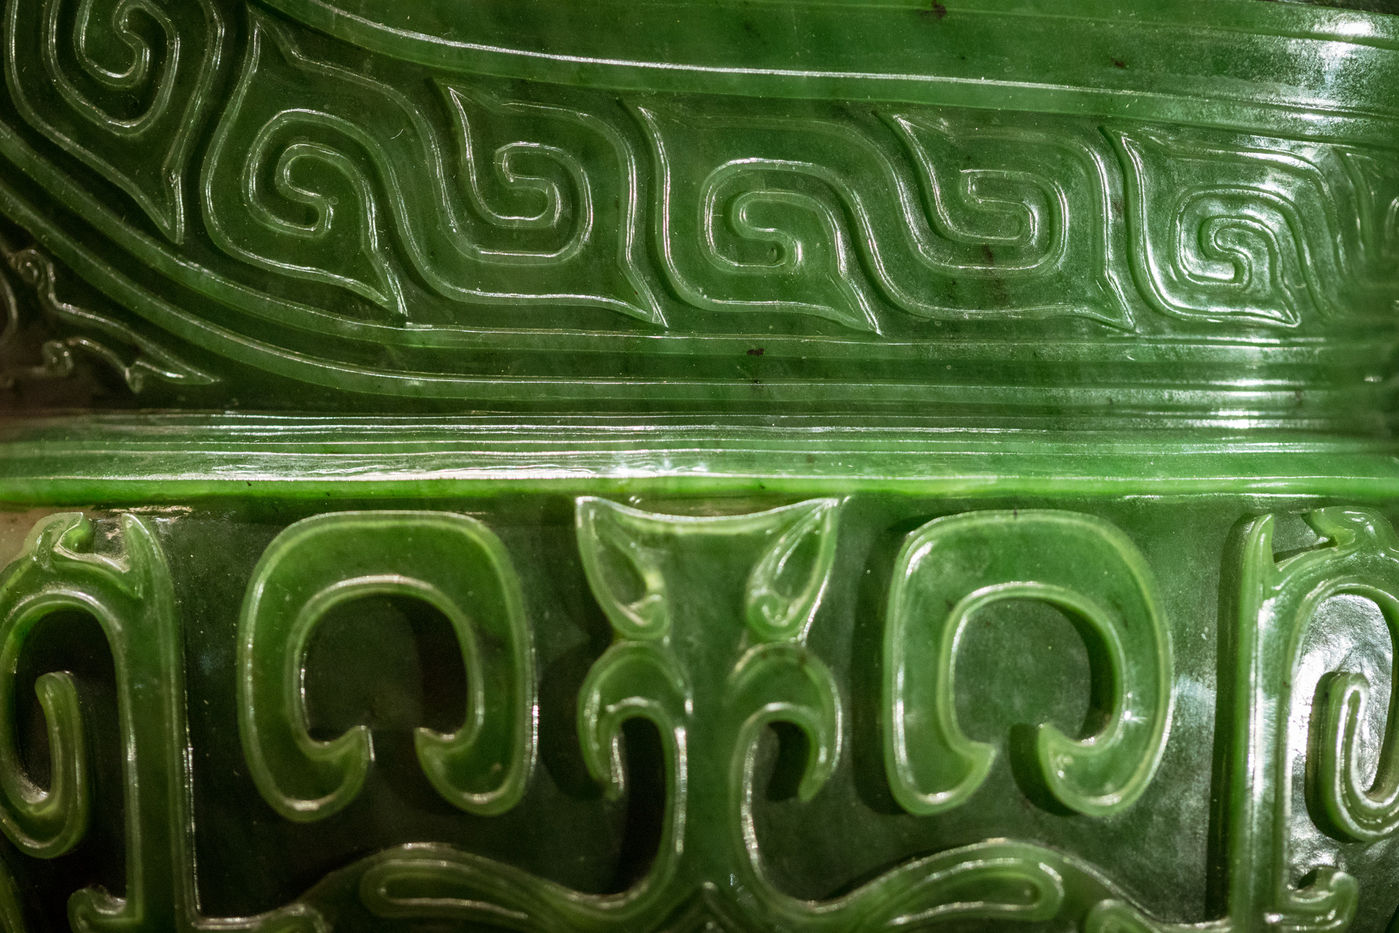 Close-up view of a jade vessel carved with repeating spiral and curvilinear patterns.